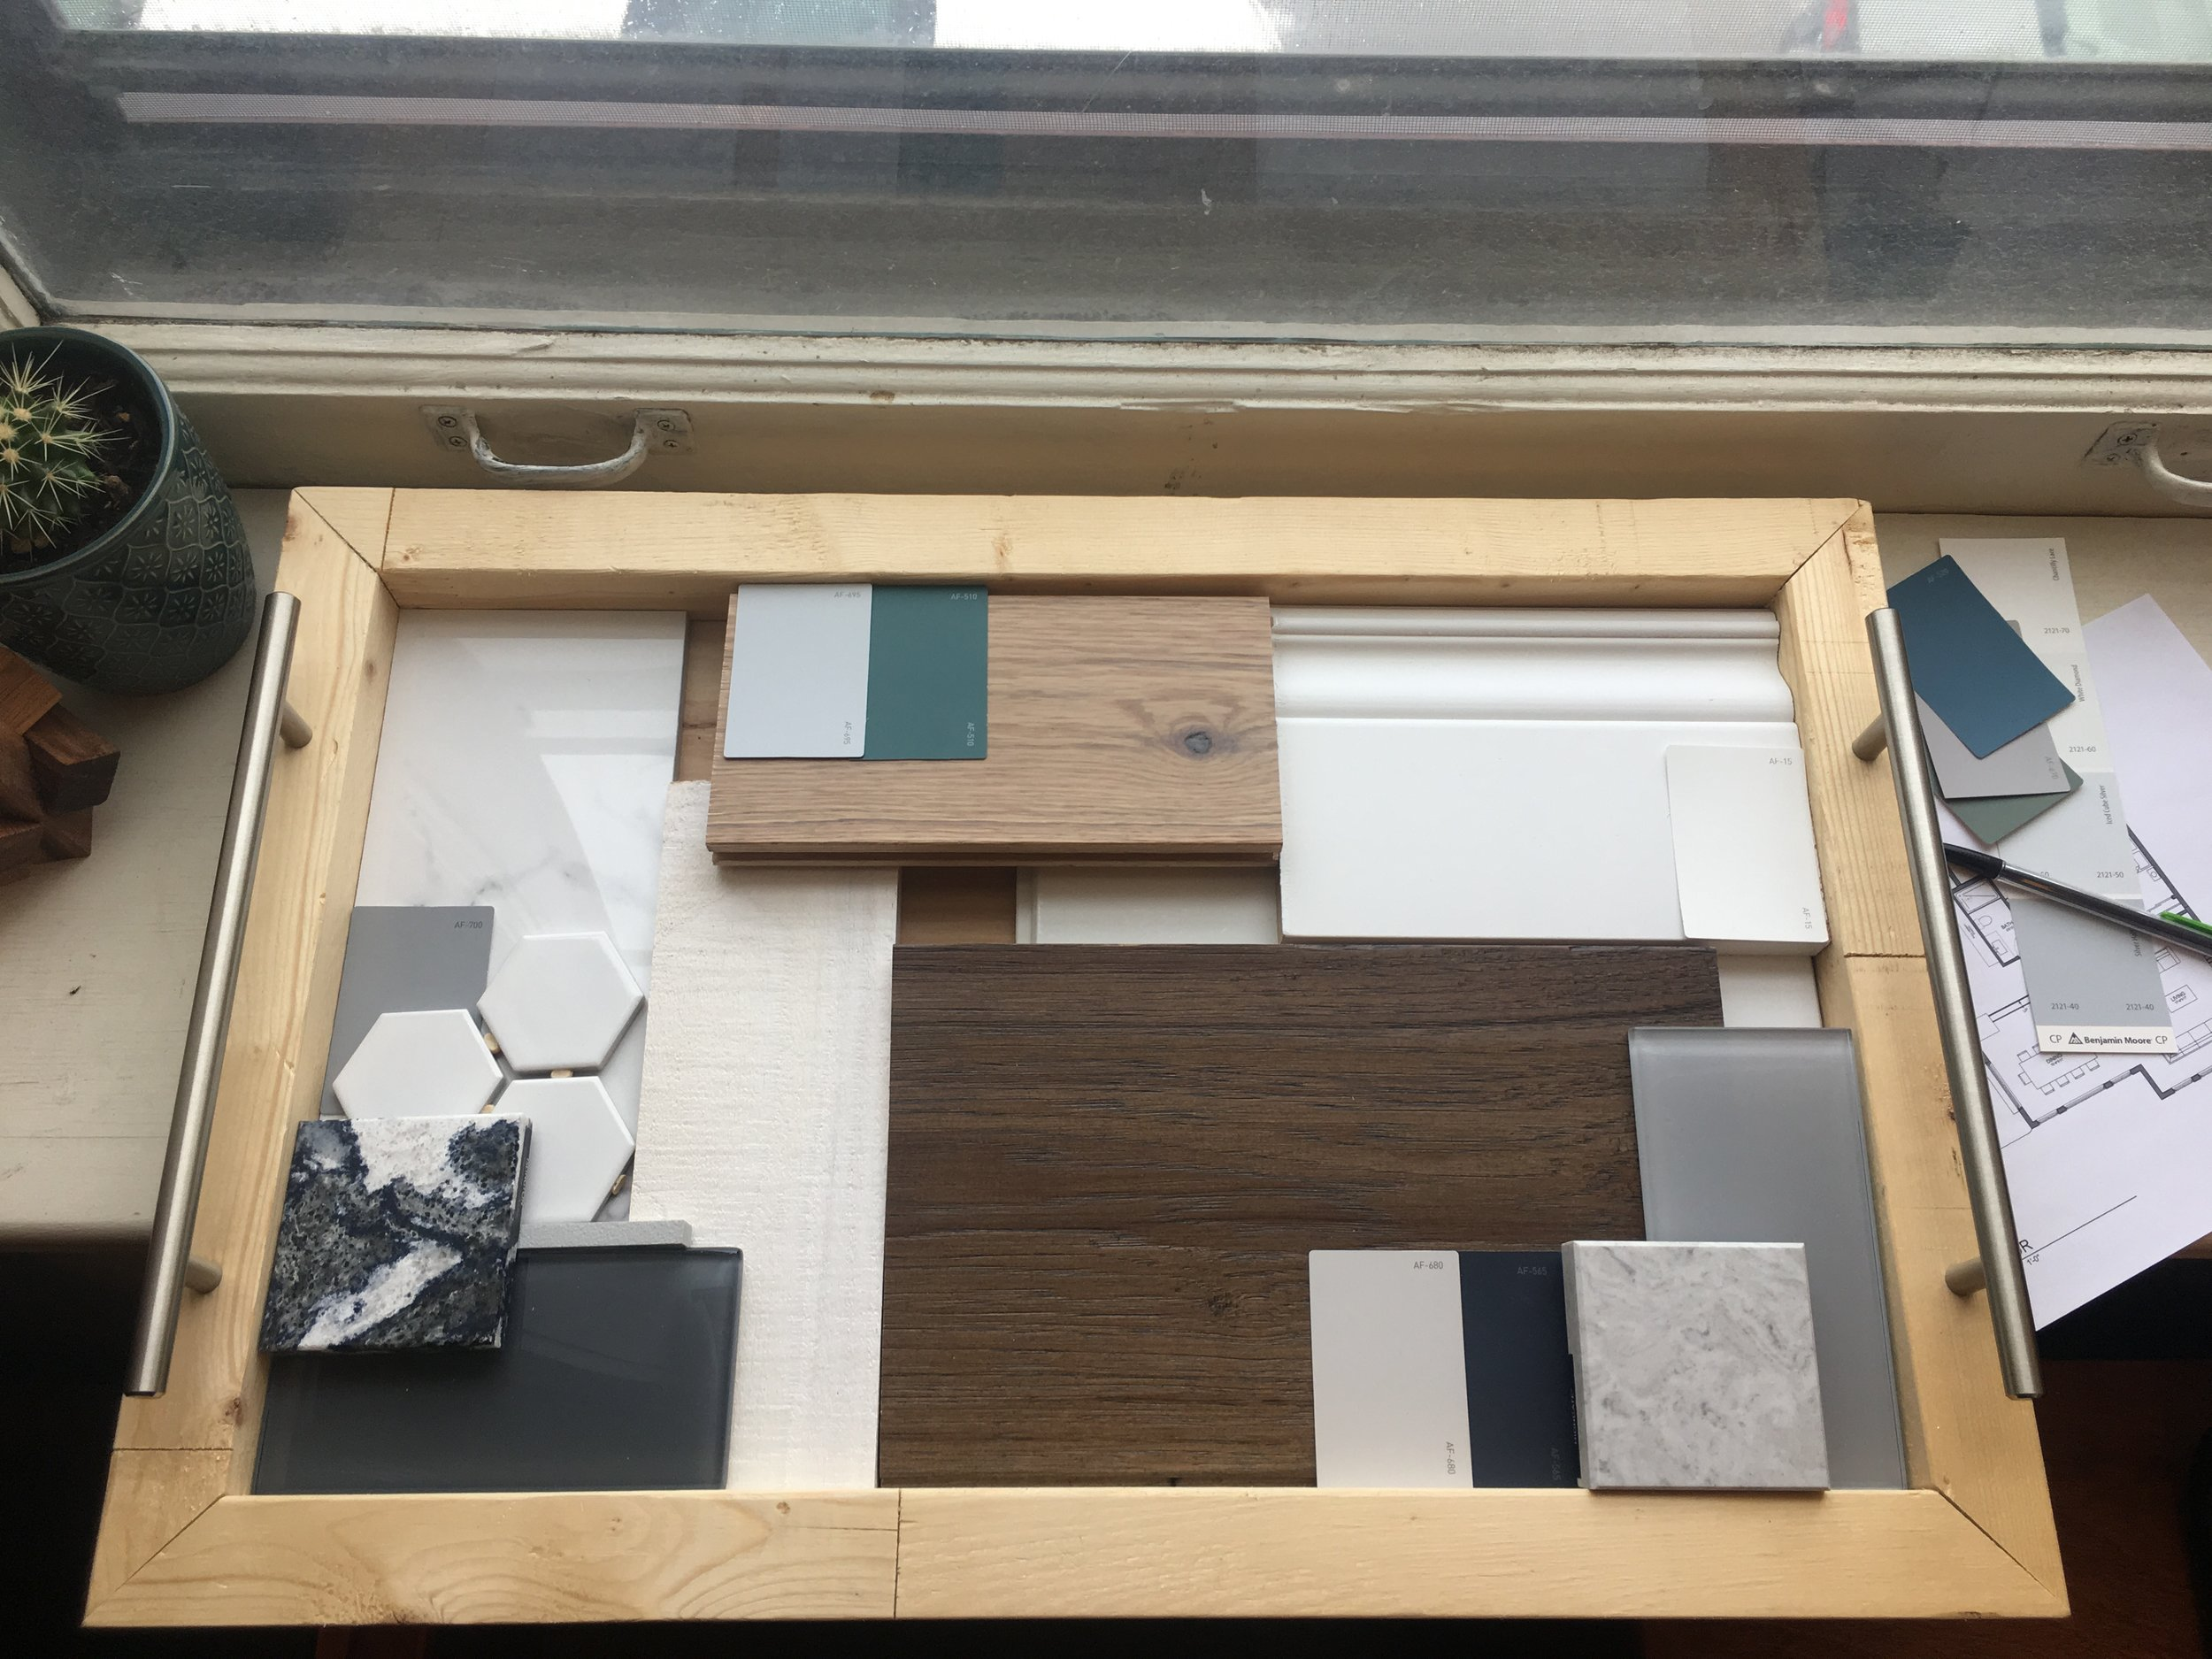 box of materials with samples of tiles, wood, marble, baseboard mold, and colour samples